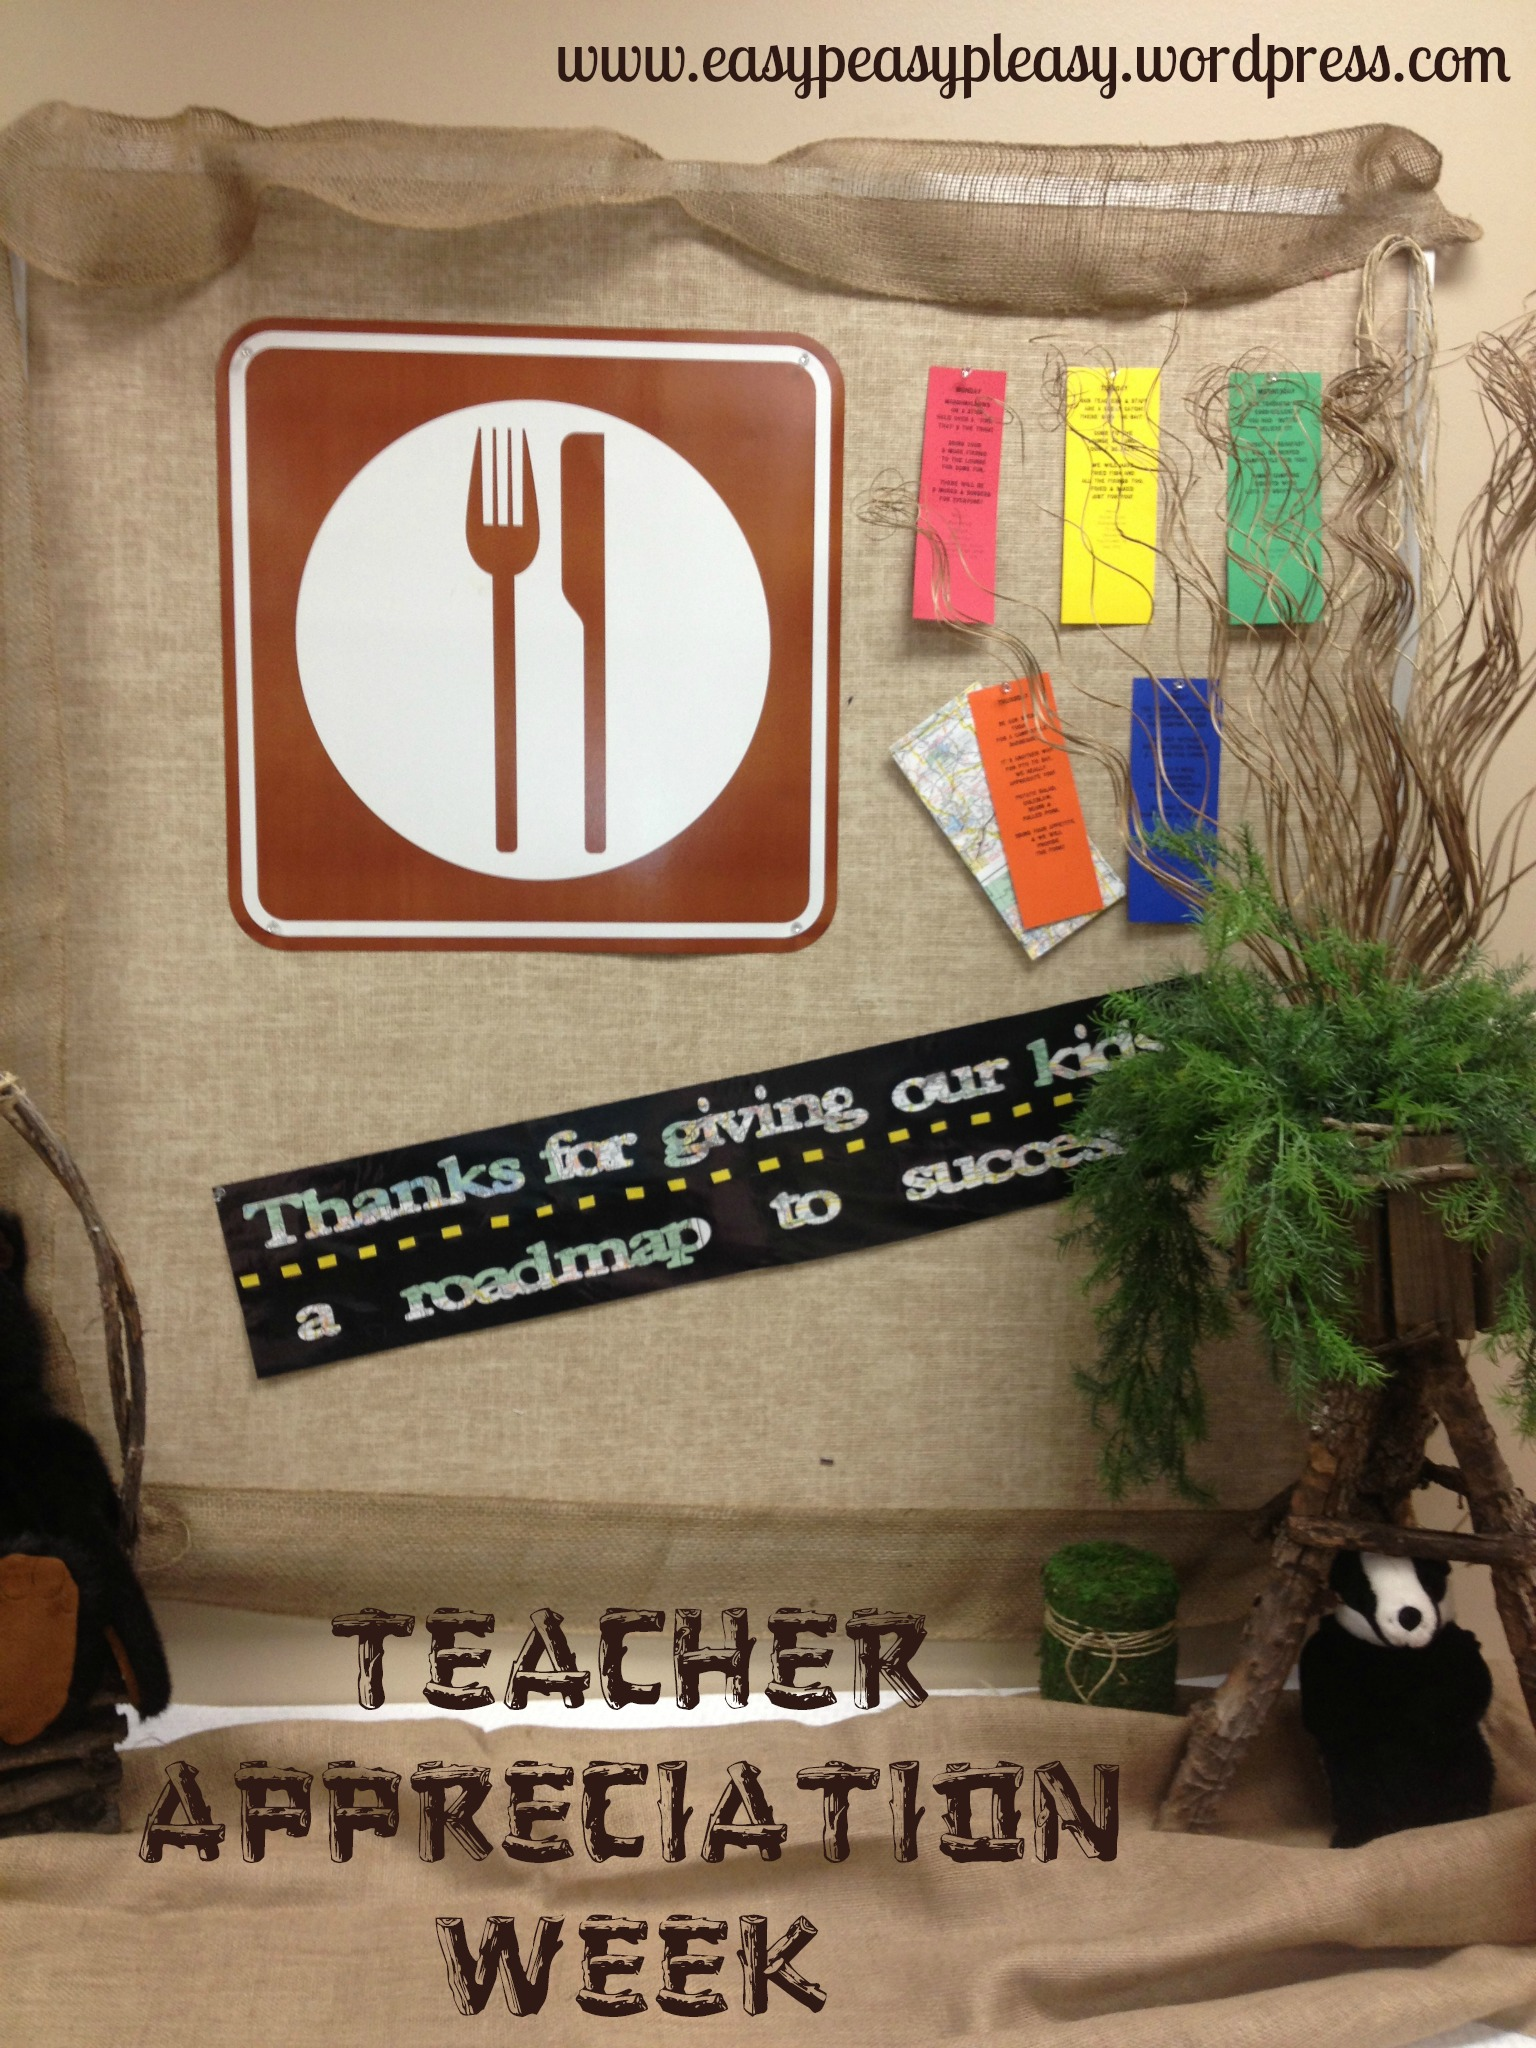 Teacher Appreciation Week Camping theme Thanks for giving our kids a road map to success